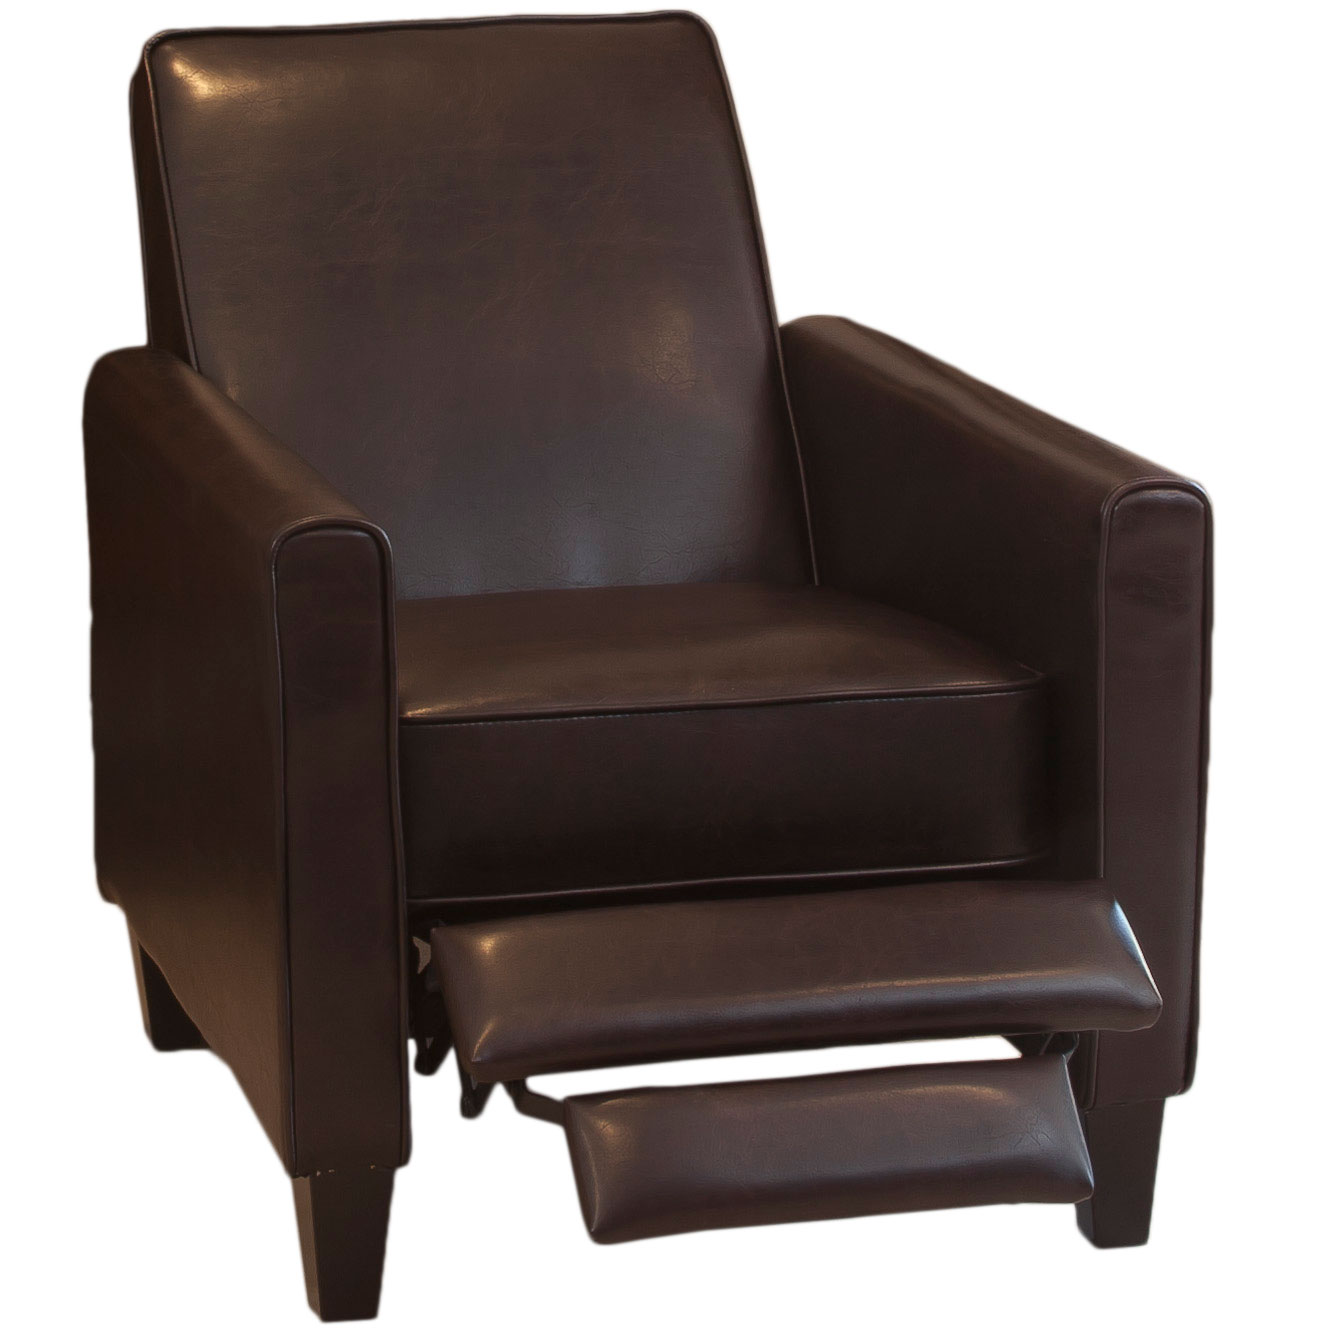 Pierce Bonded Leather Recliner Club Chair